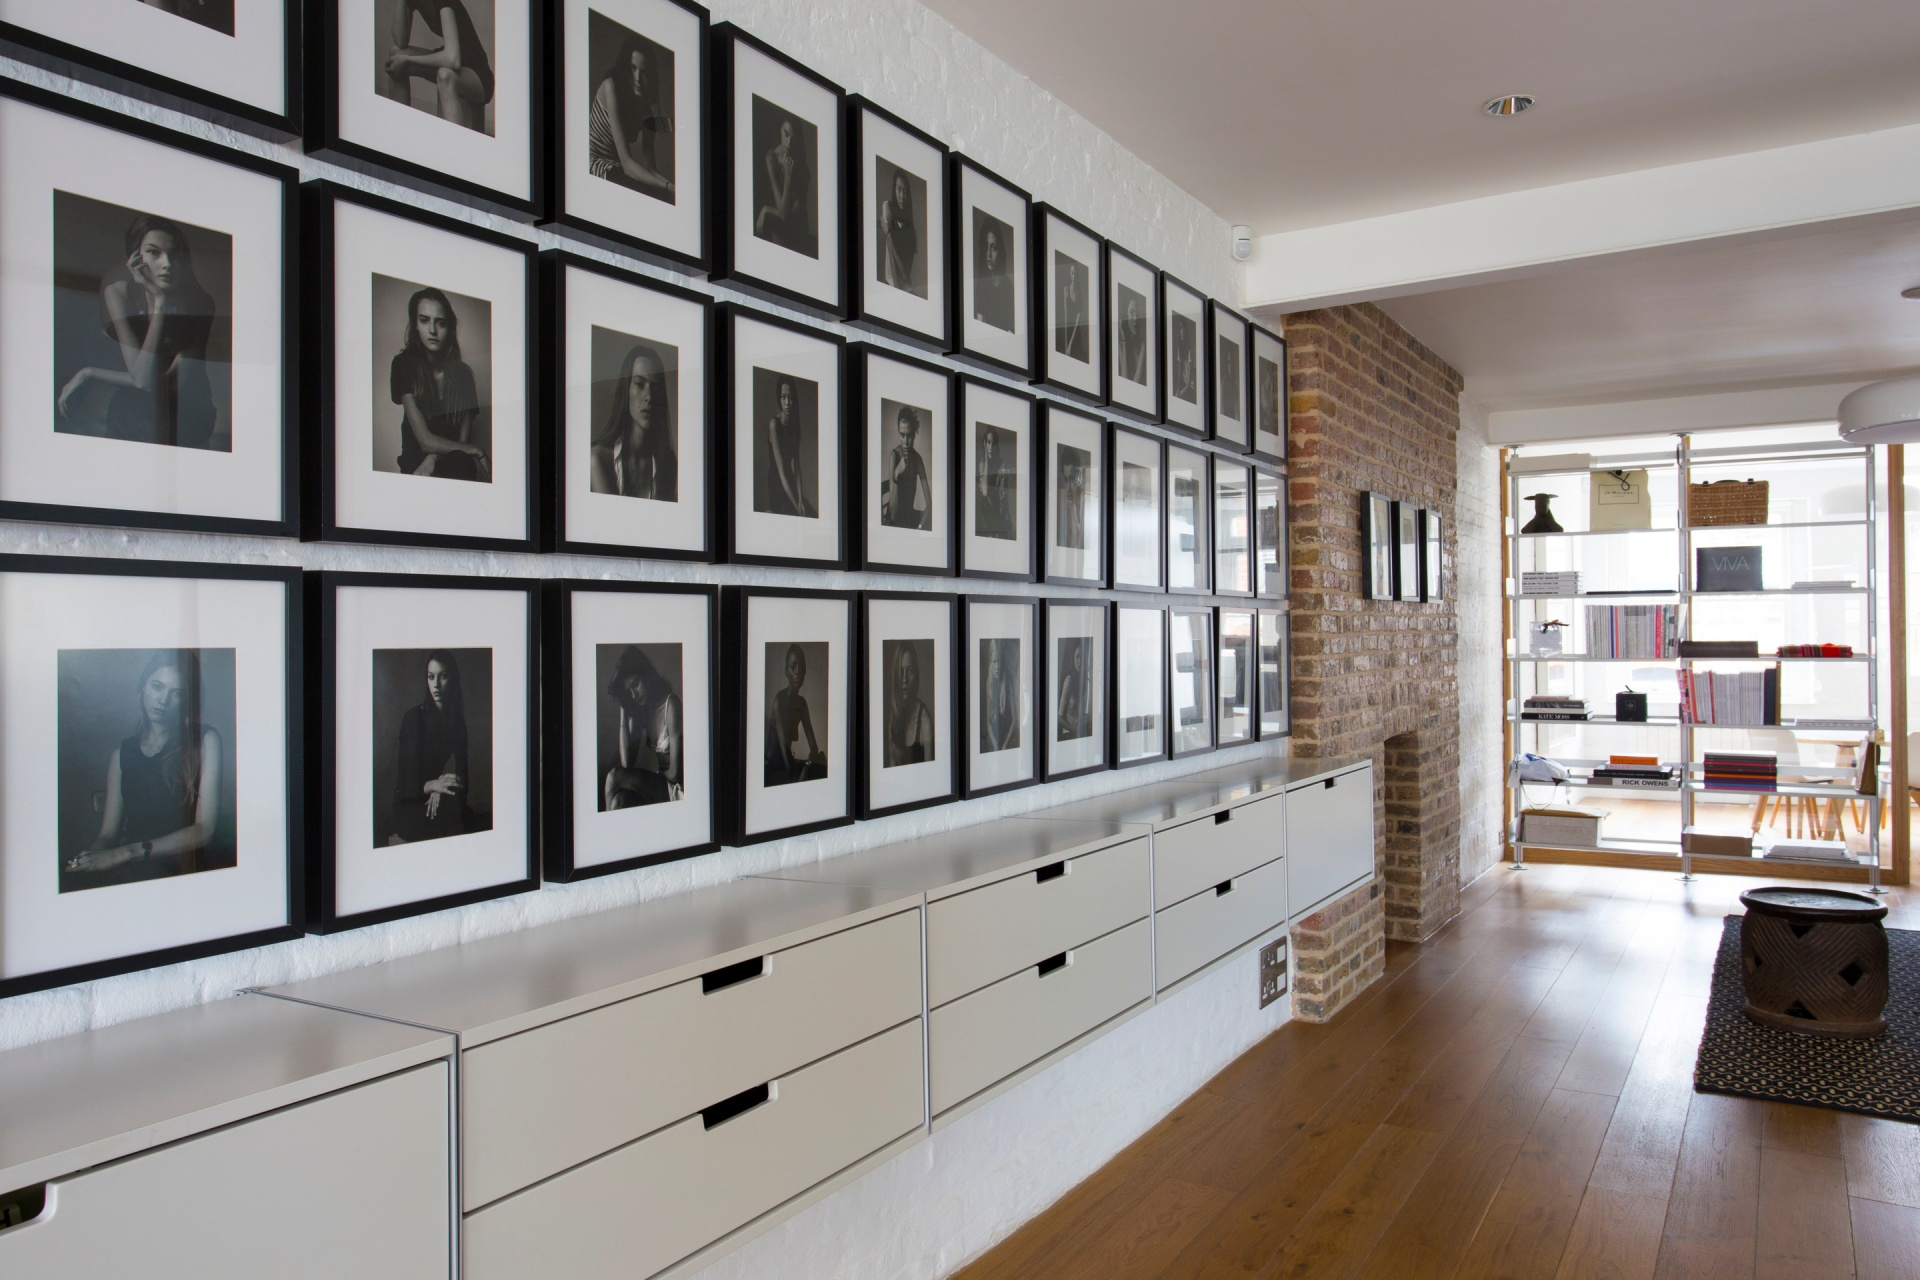 Wall-mounted cabinets on painted fair-faced bricks – below model portraits. A compressed shelving system in the background